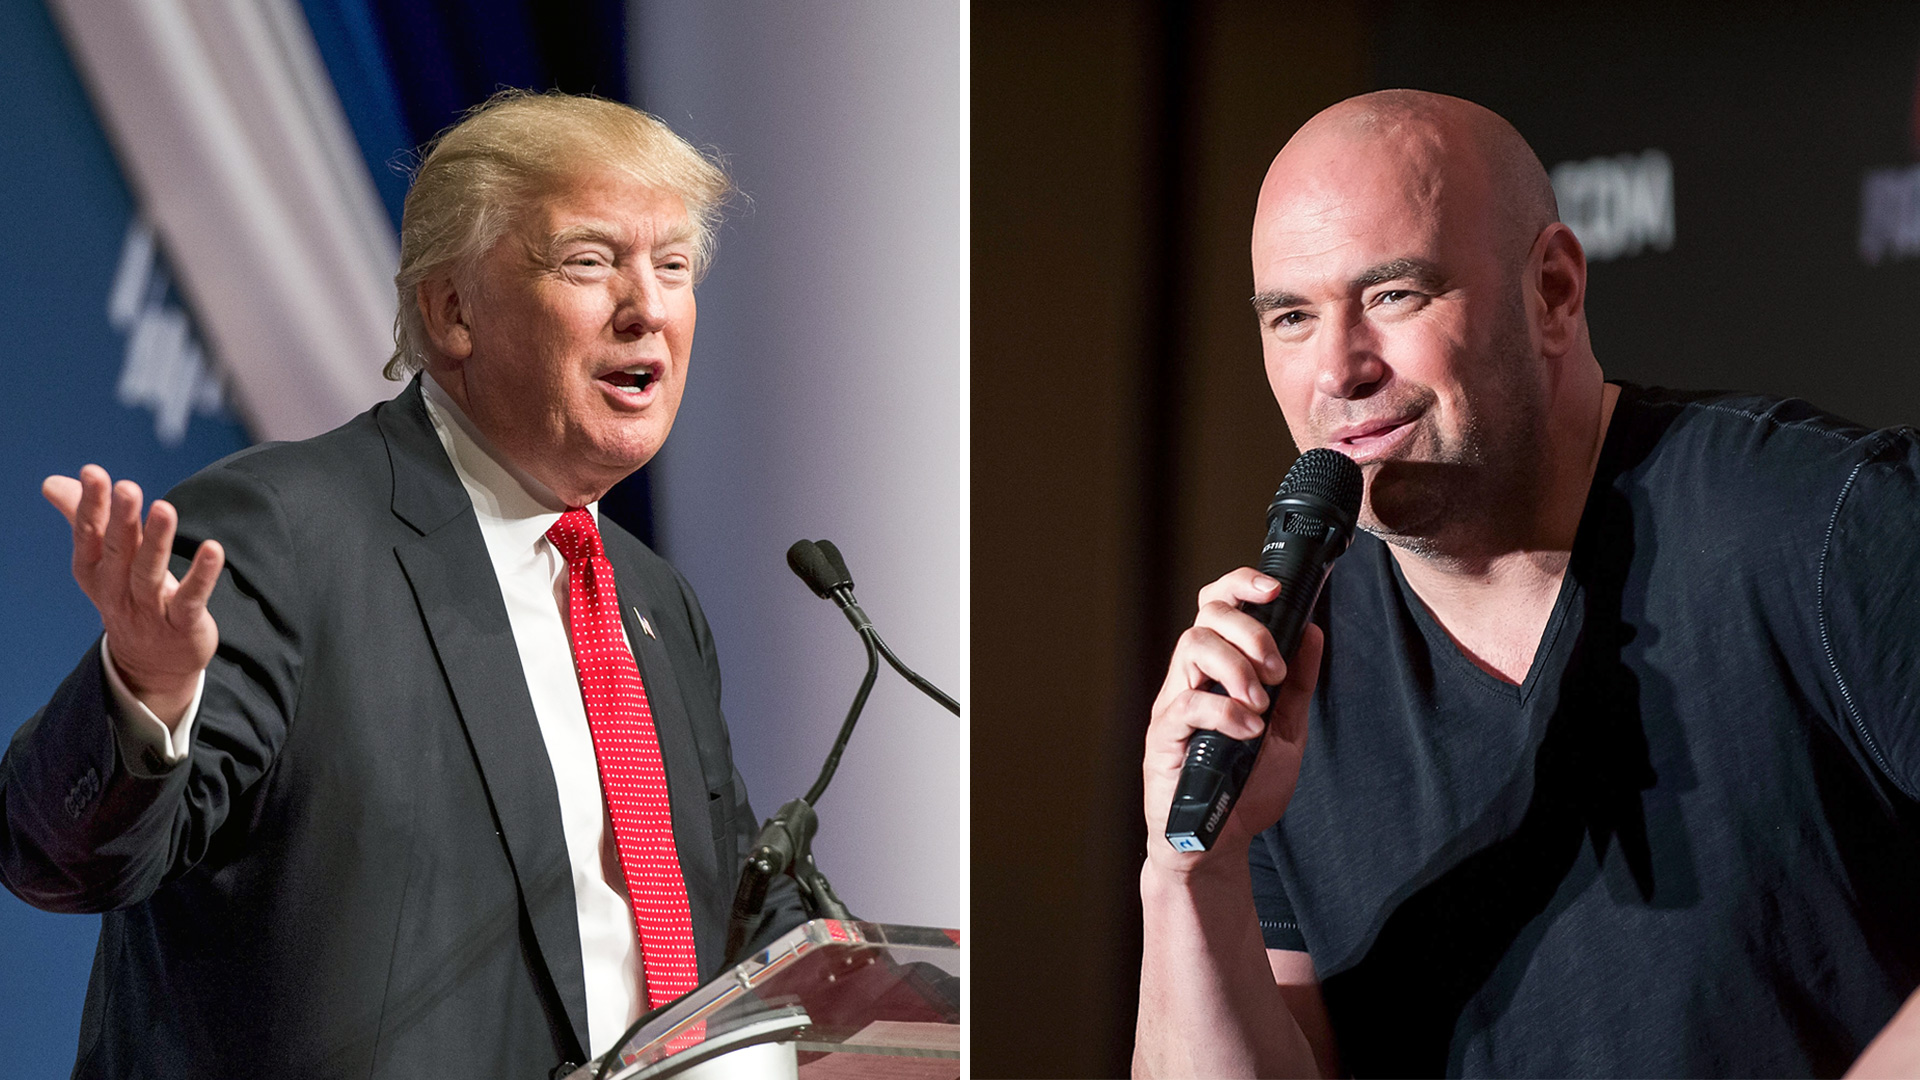 Dana White and Donald Trump-121115-GETTY-FTR.jpg